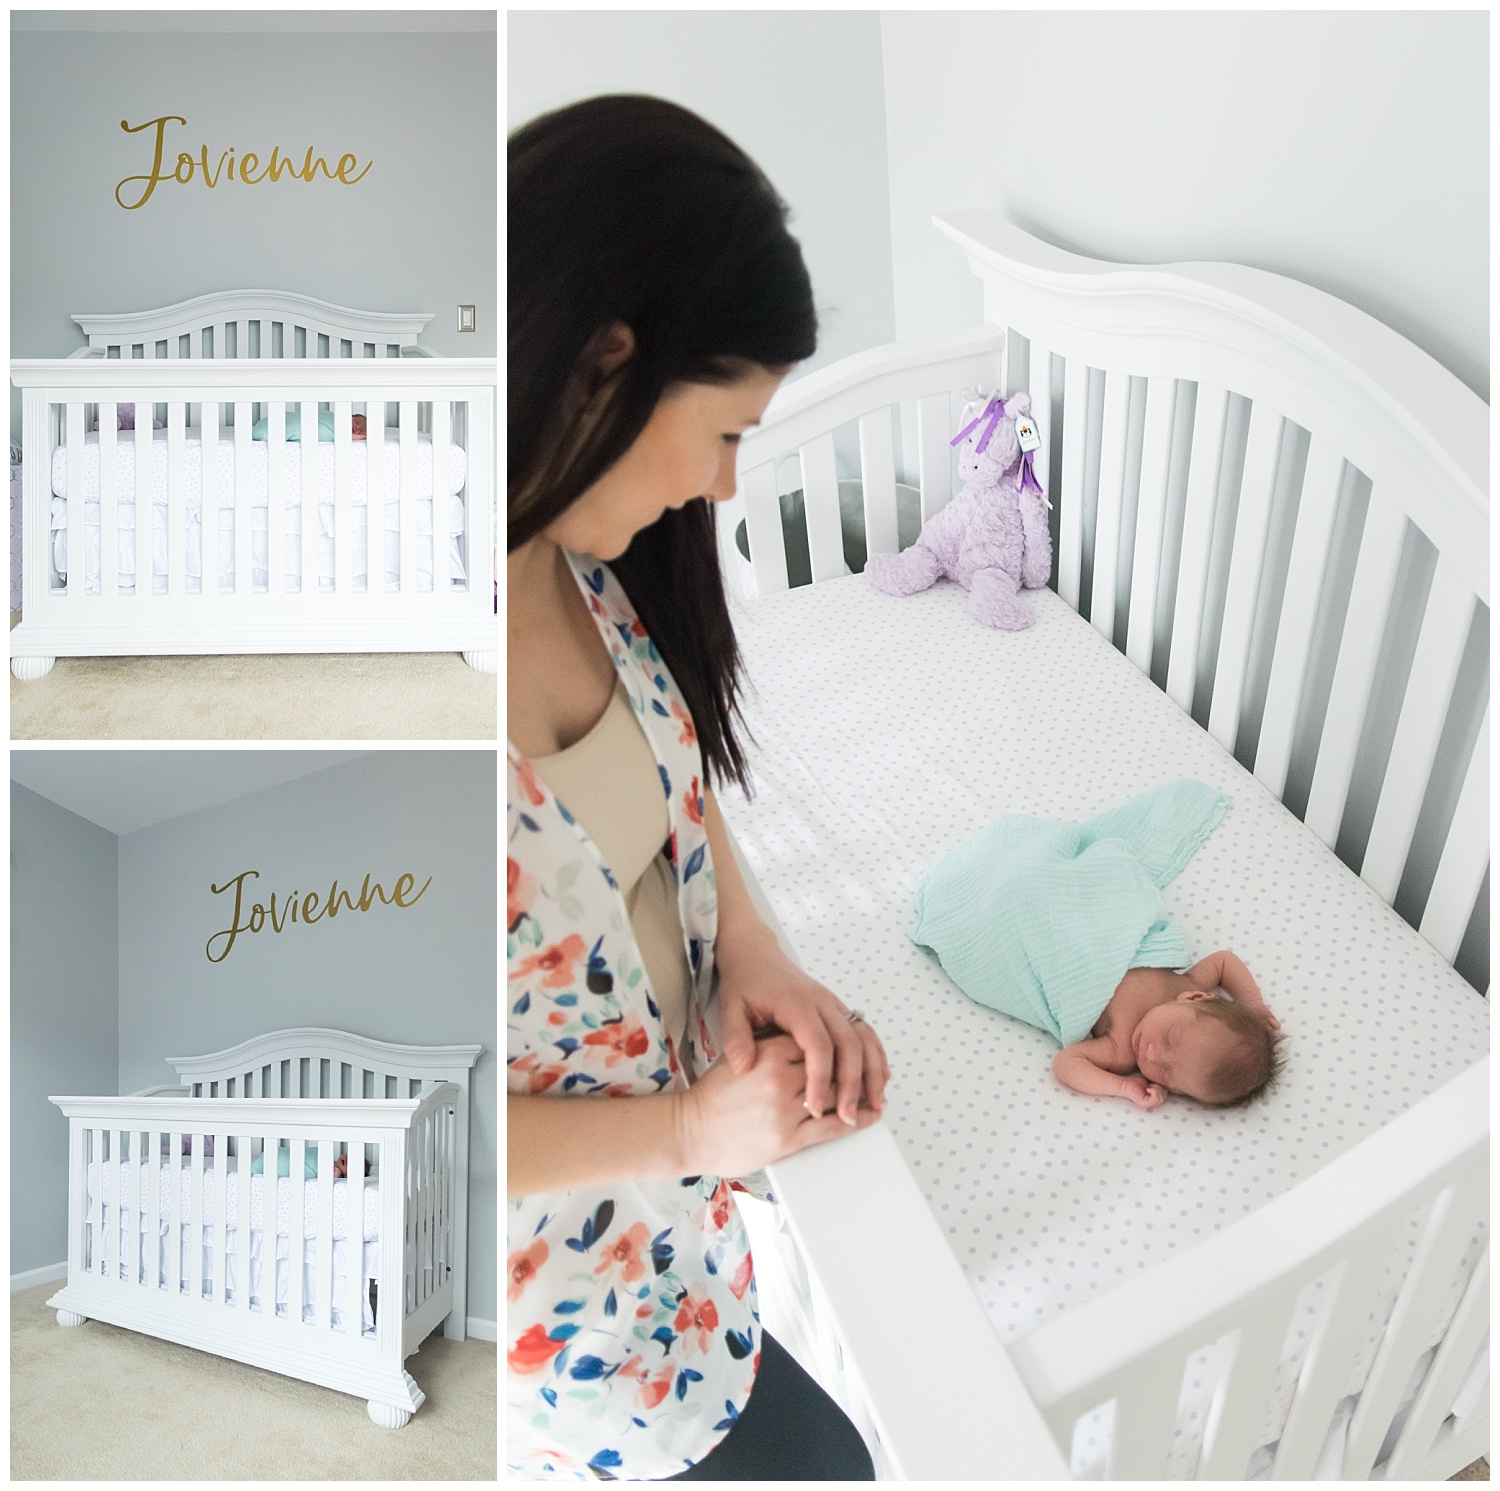 this is an image taken during an in home lifestyle newborn session. the newborn baby girl is sleeping in her crib and mom is looking at the baby and smiling.